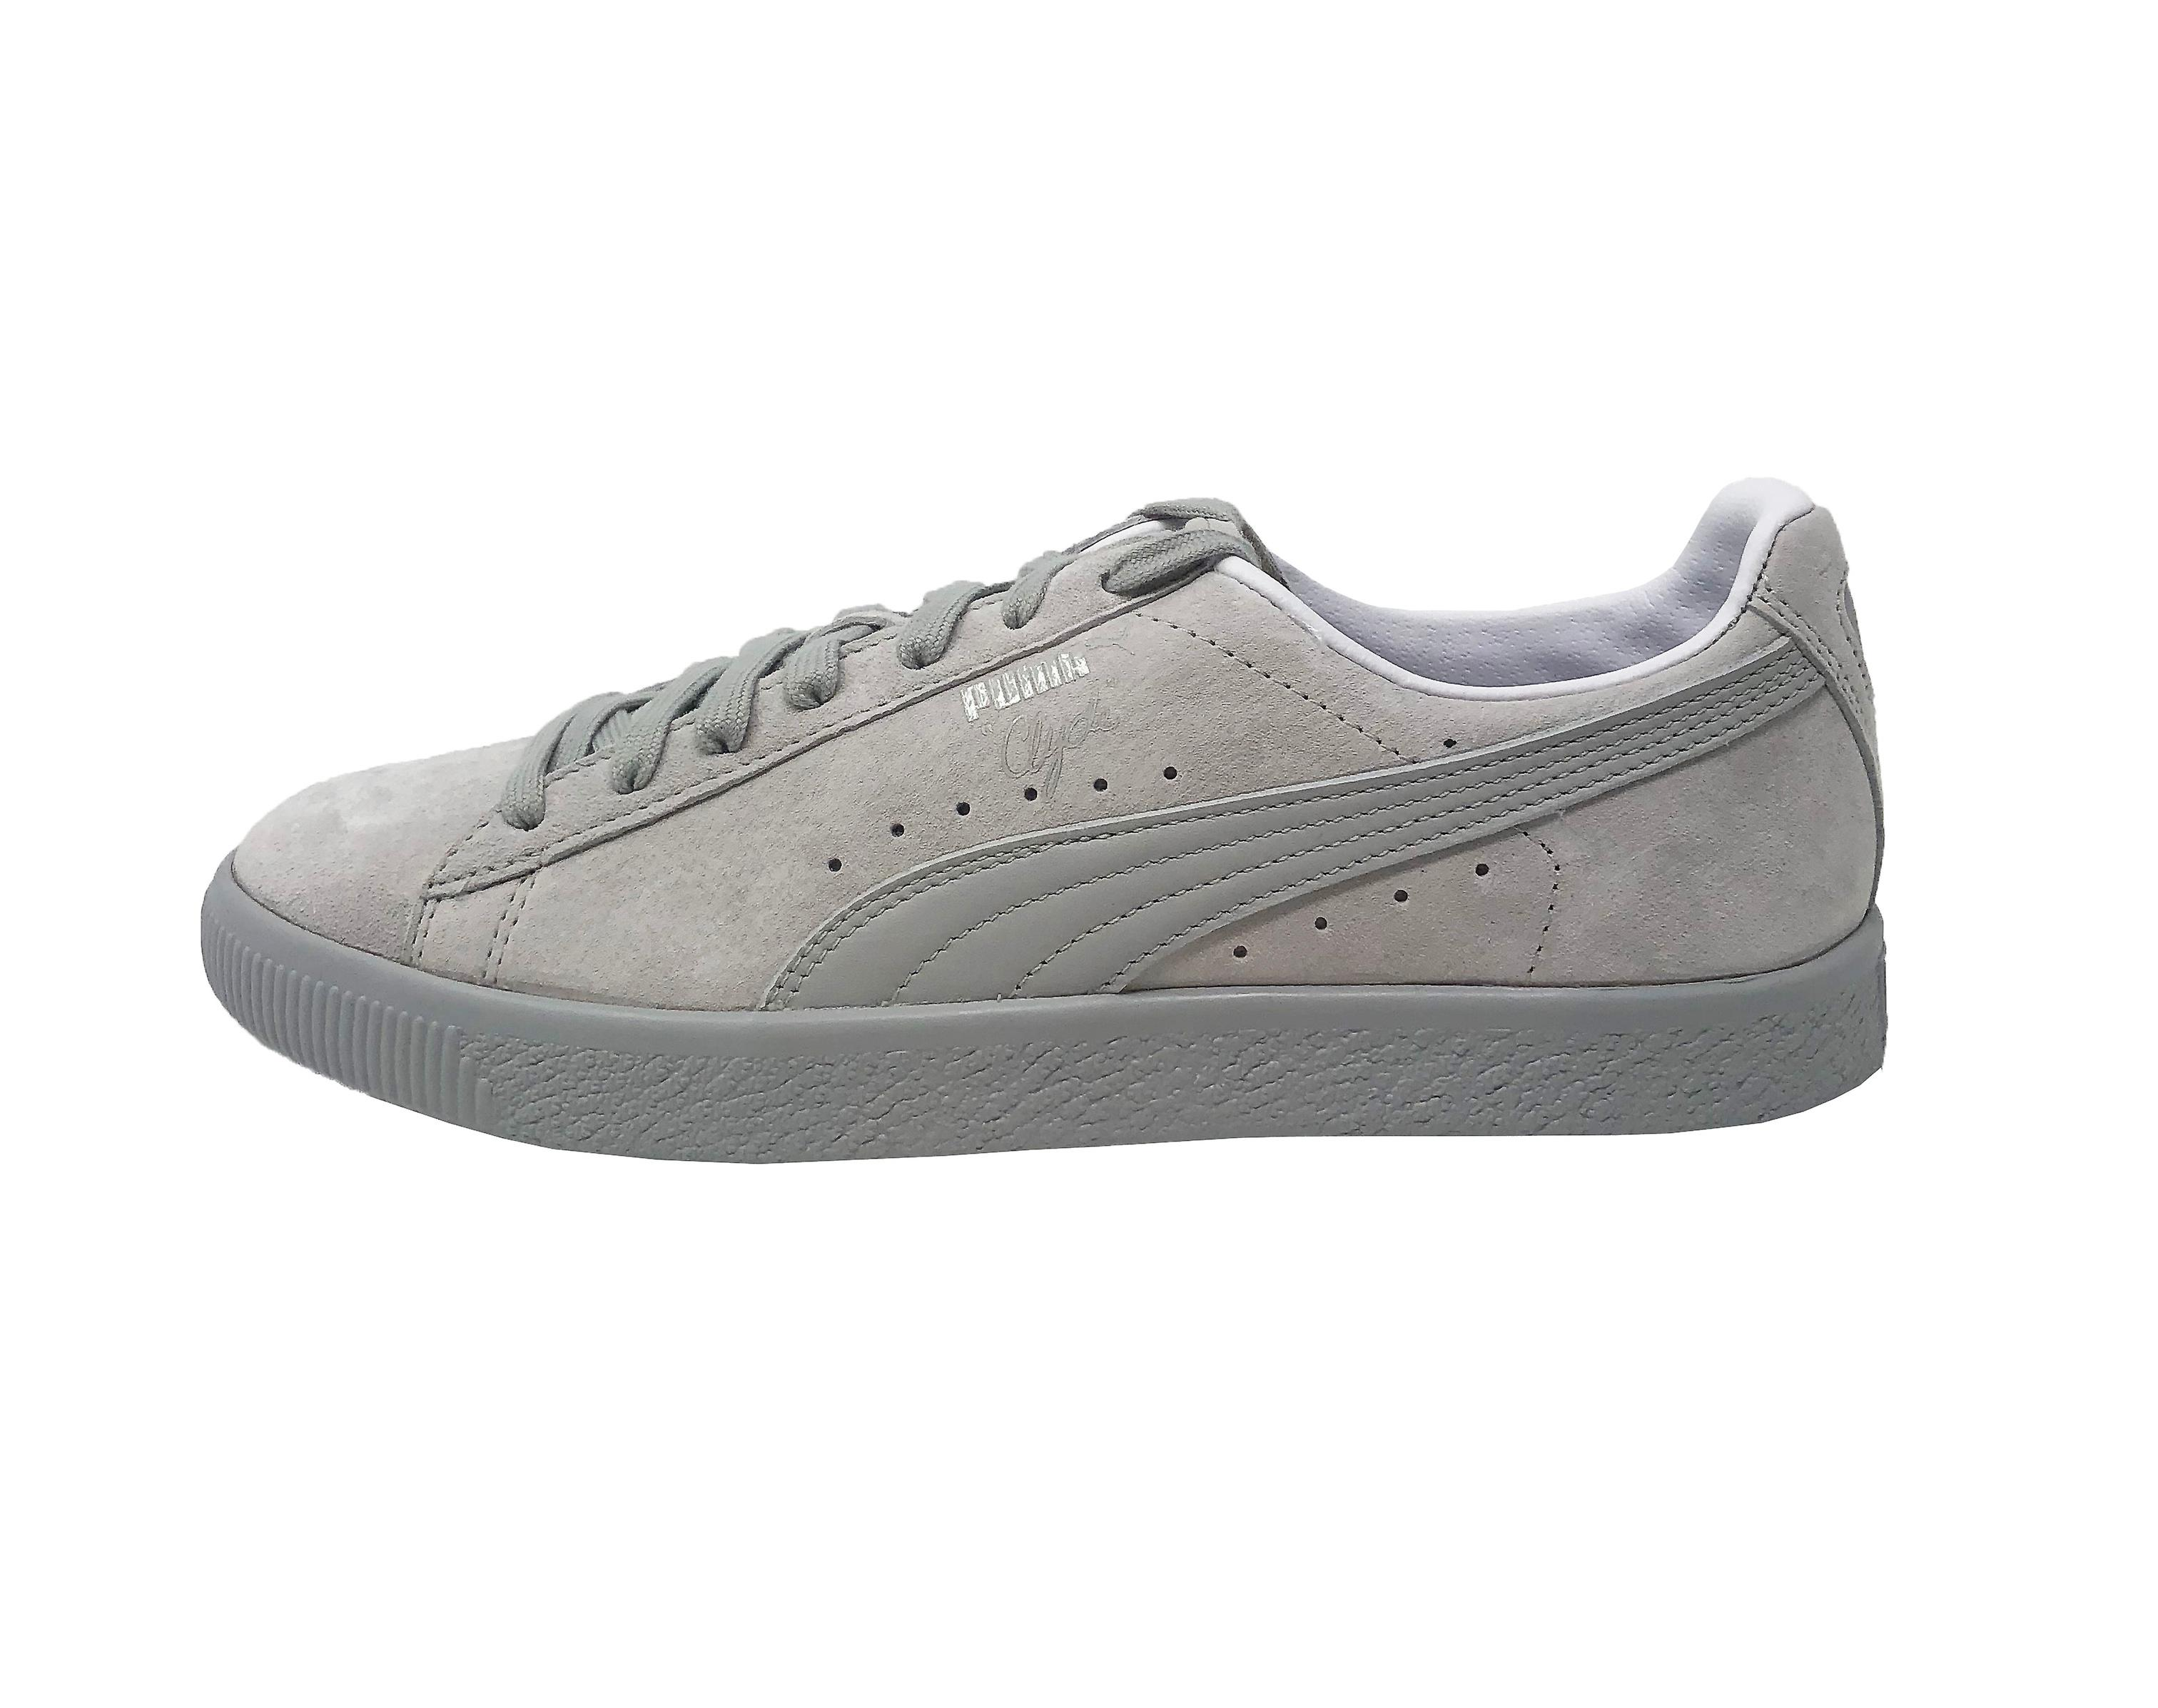 meet 0dd2b 6cb5a Puma Clyde Normcore Suede 363836 05 Mens Trainers